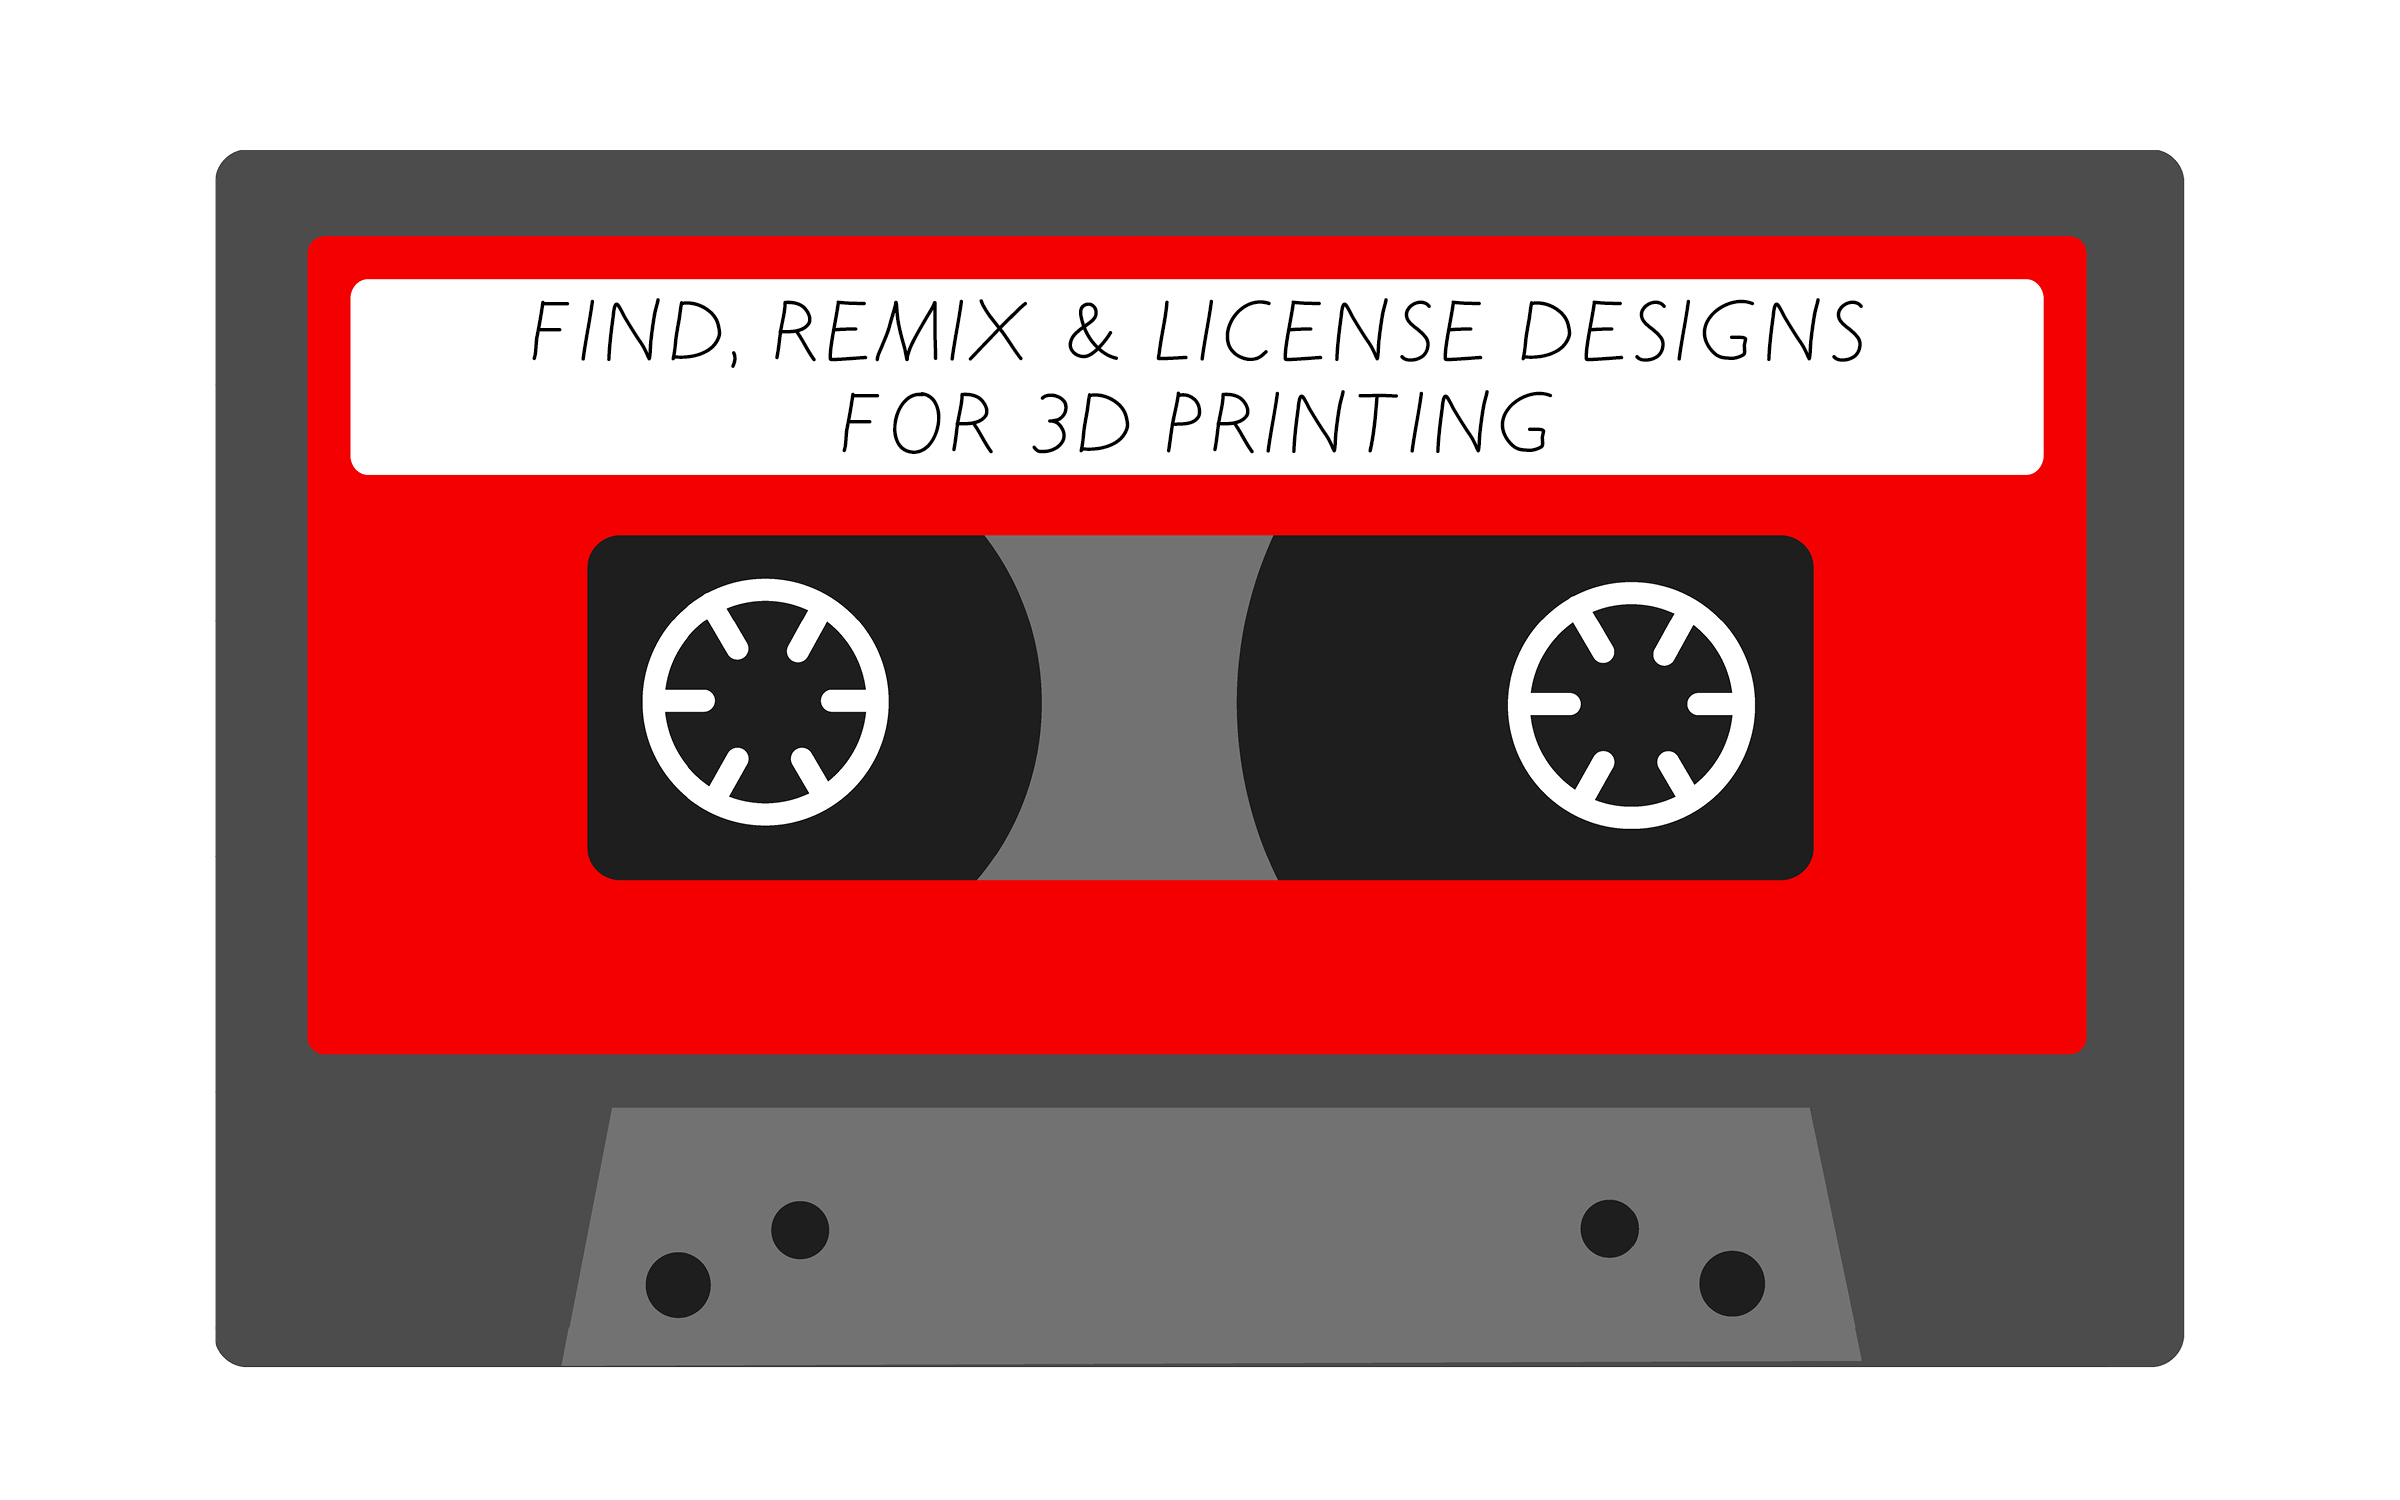 Find, Remix, & License Designs for 3D Printing